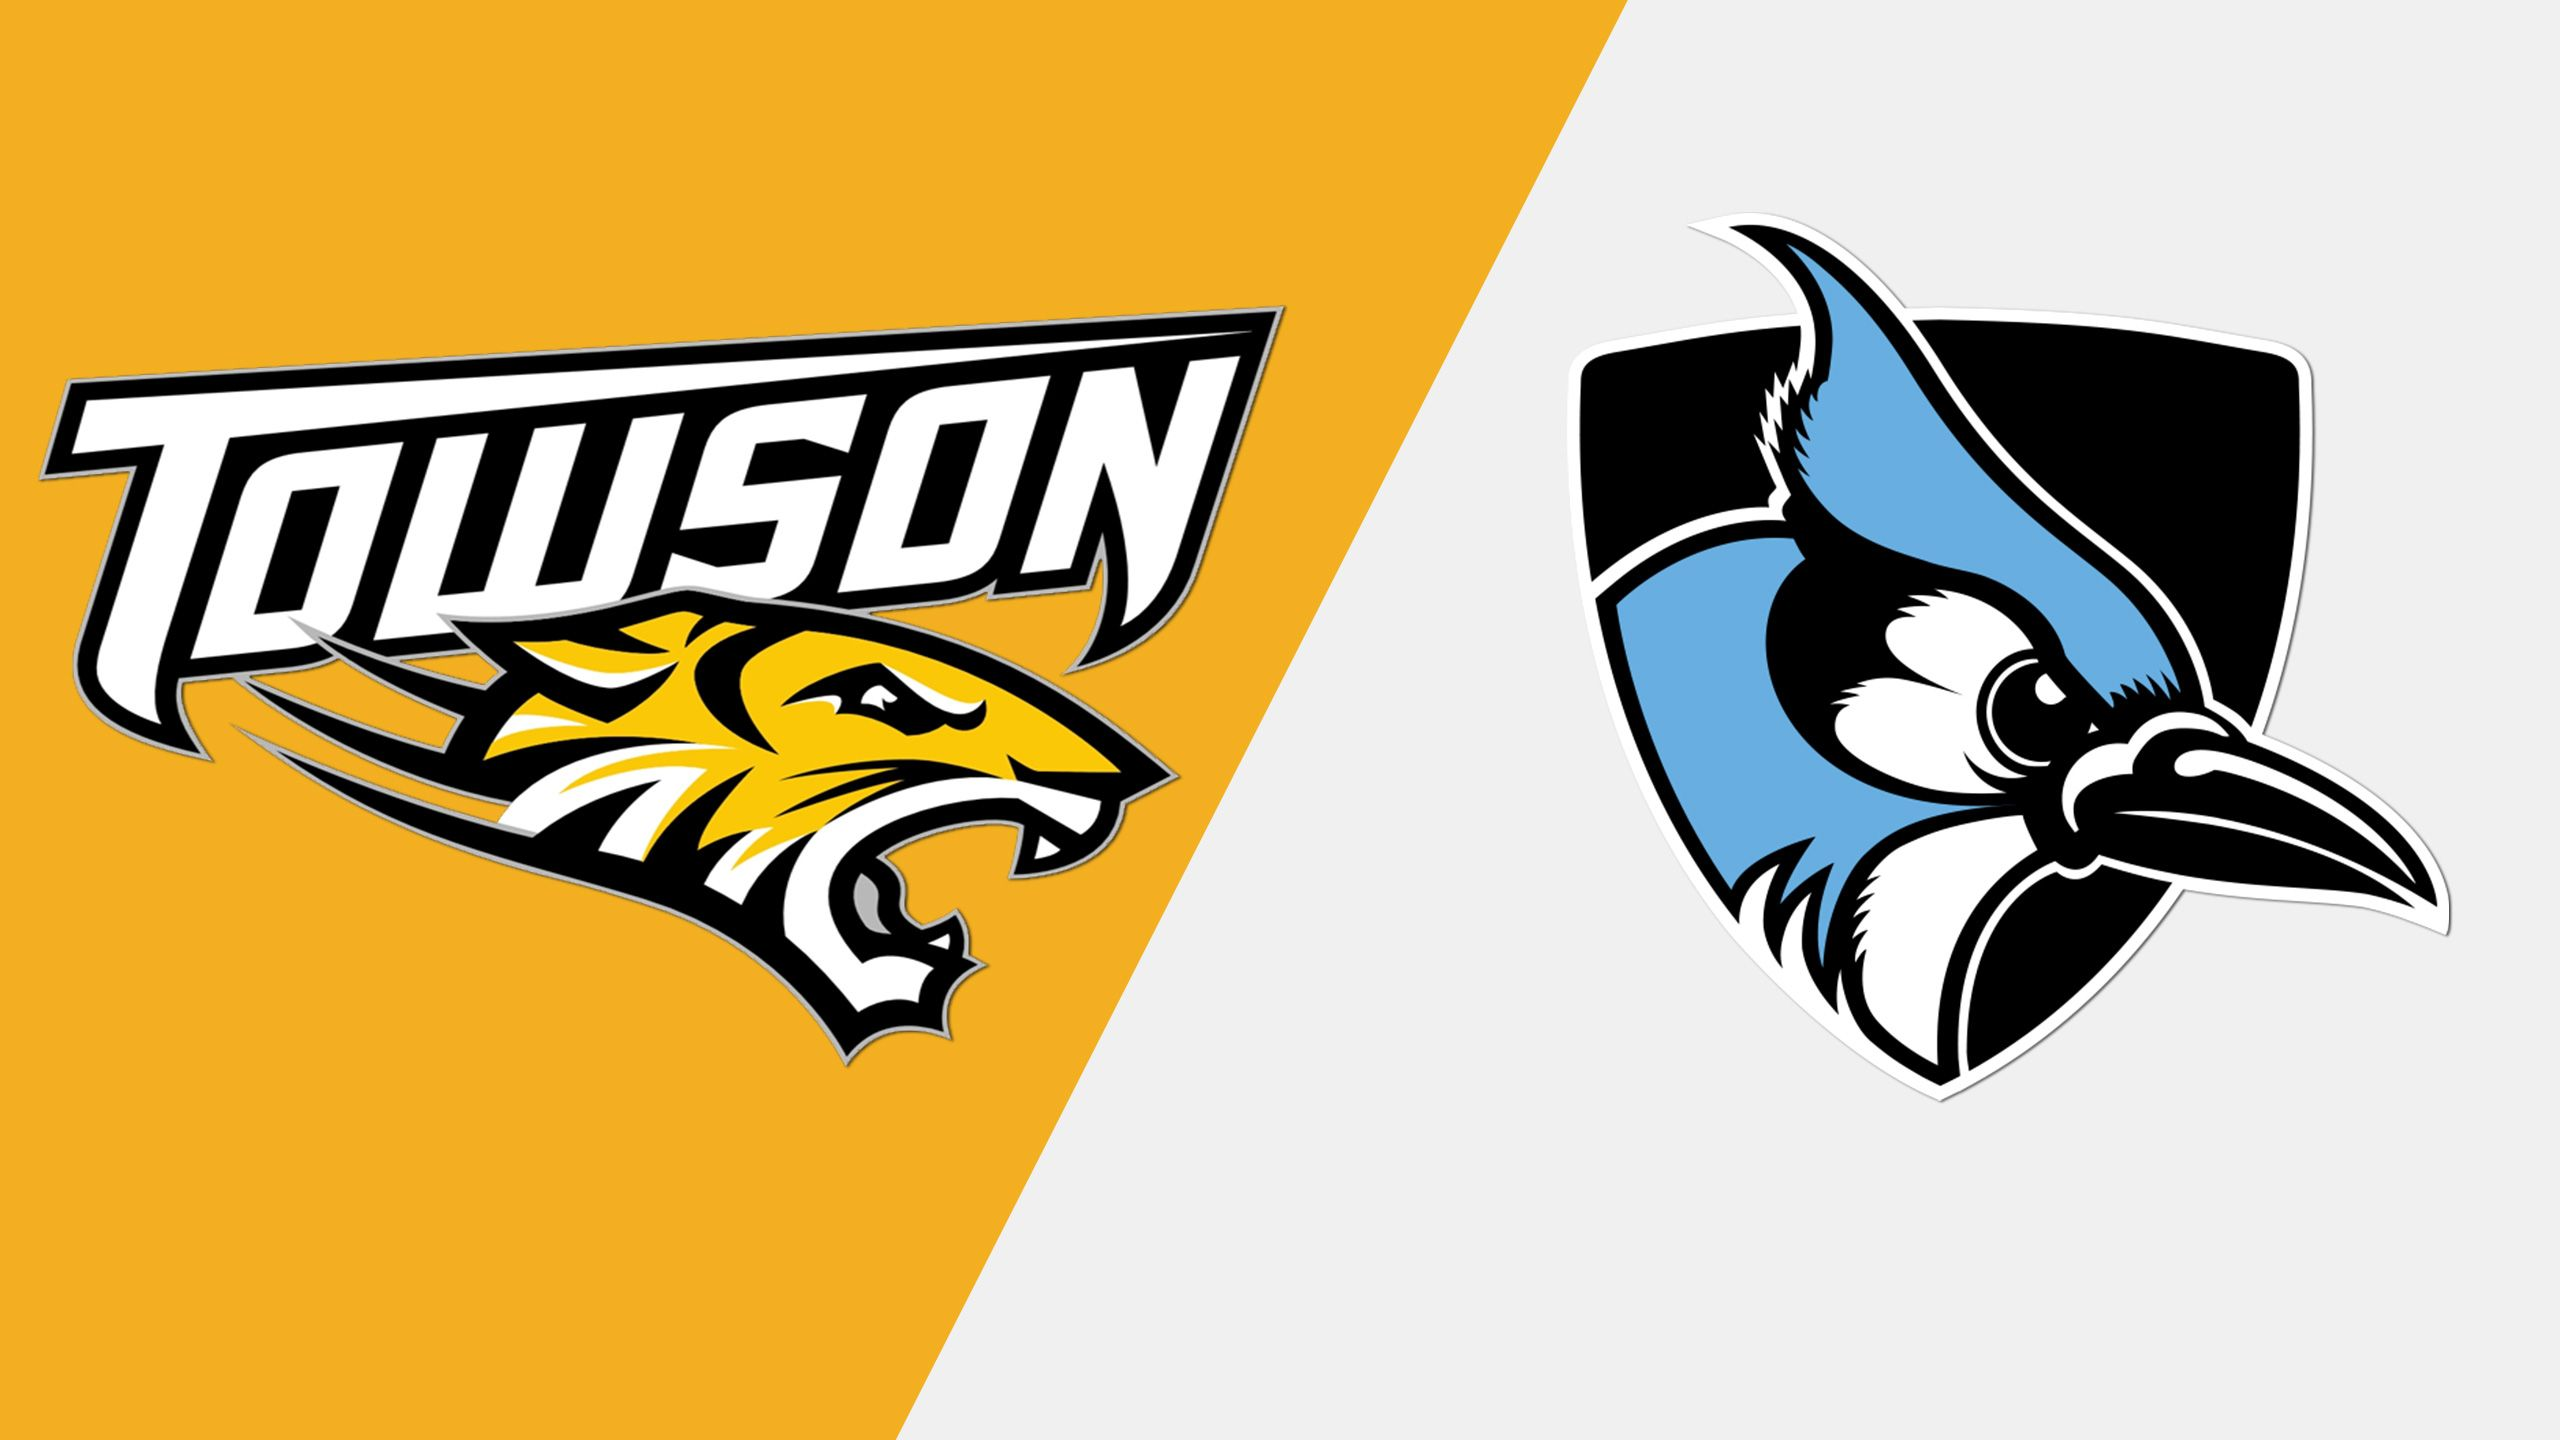 Towson vs. Johns Hopkins (W Lacrosse)